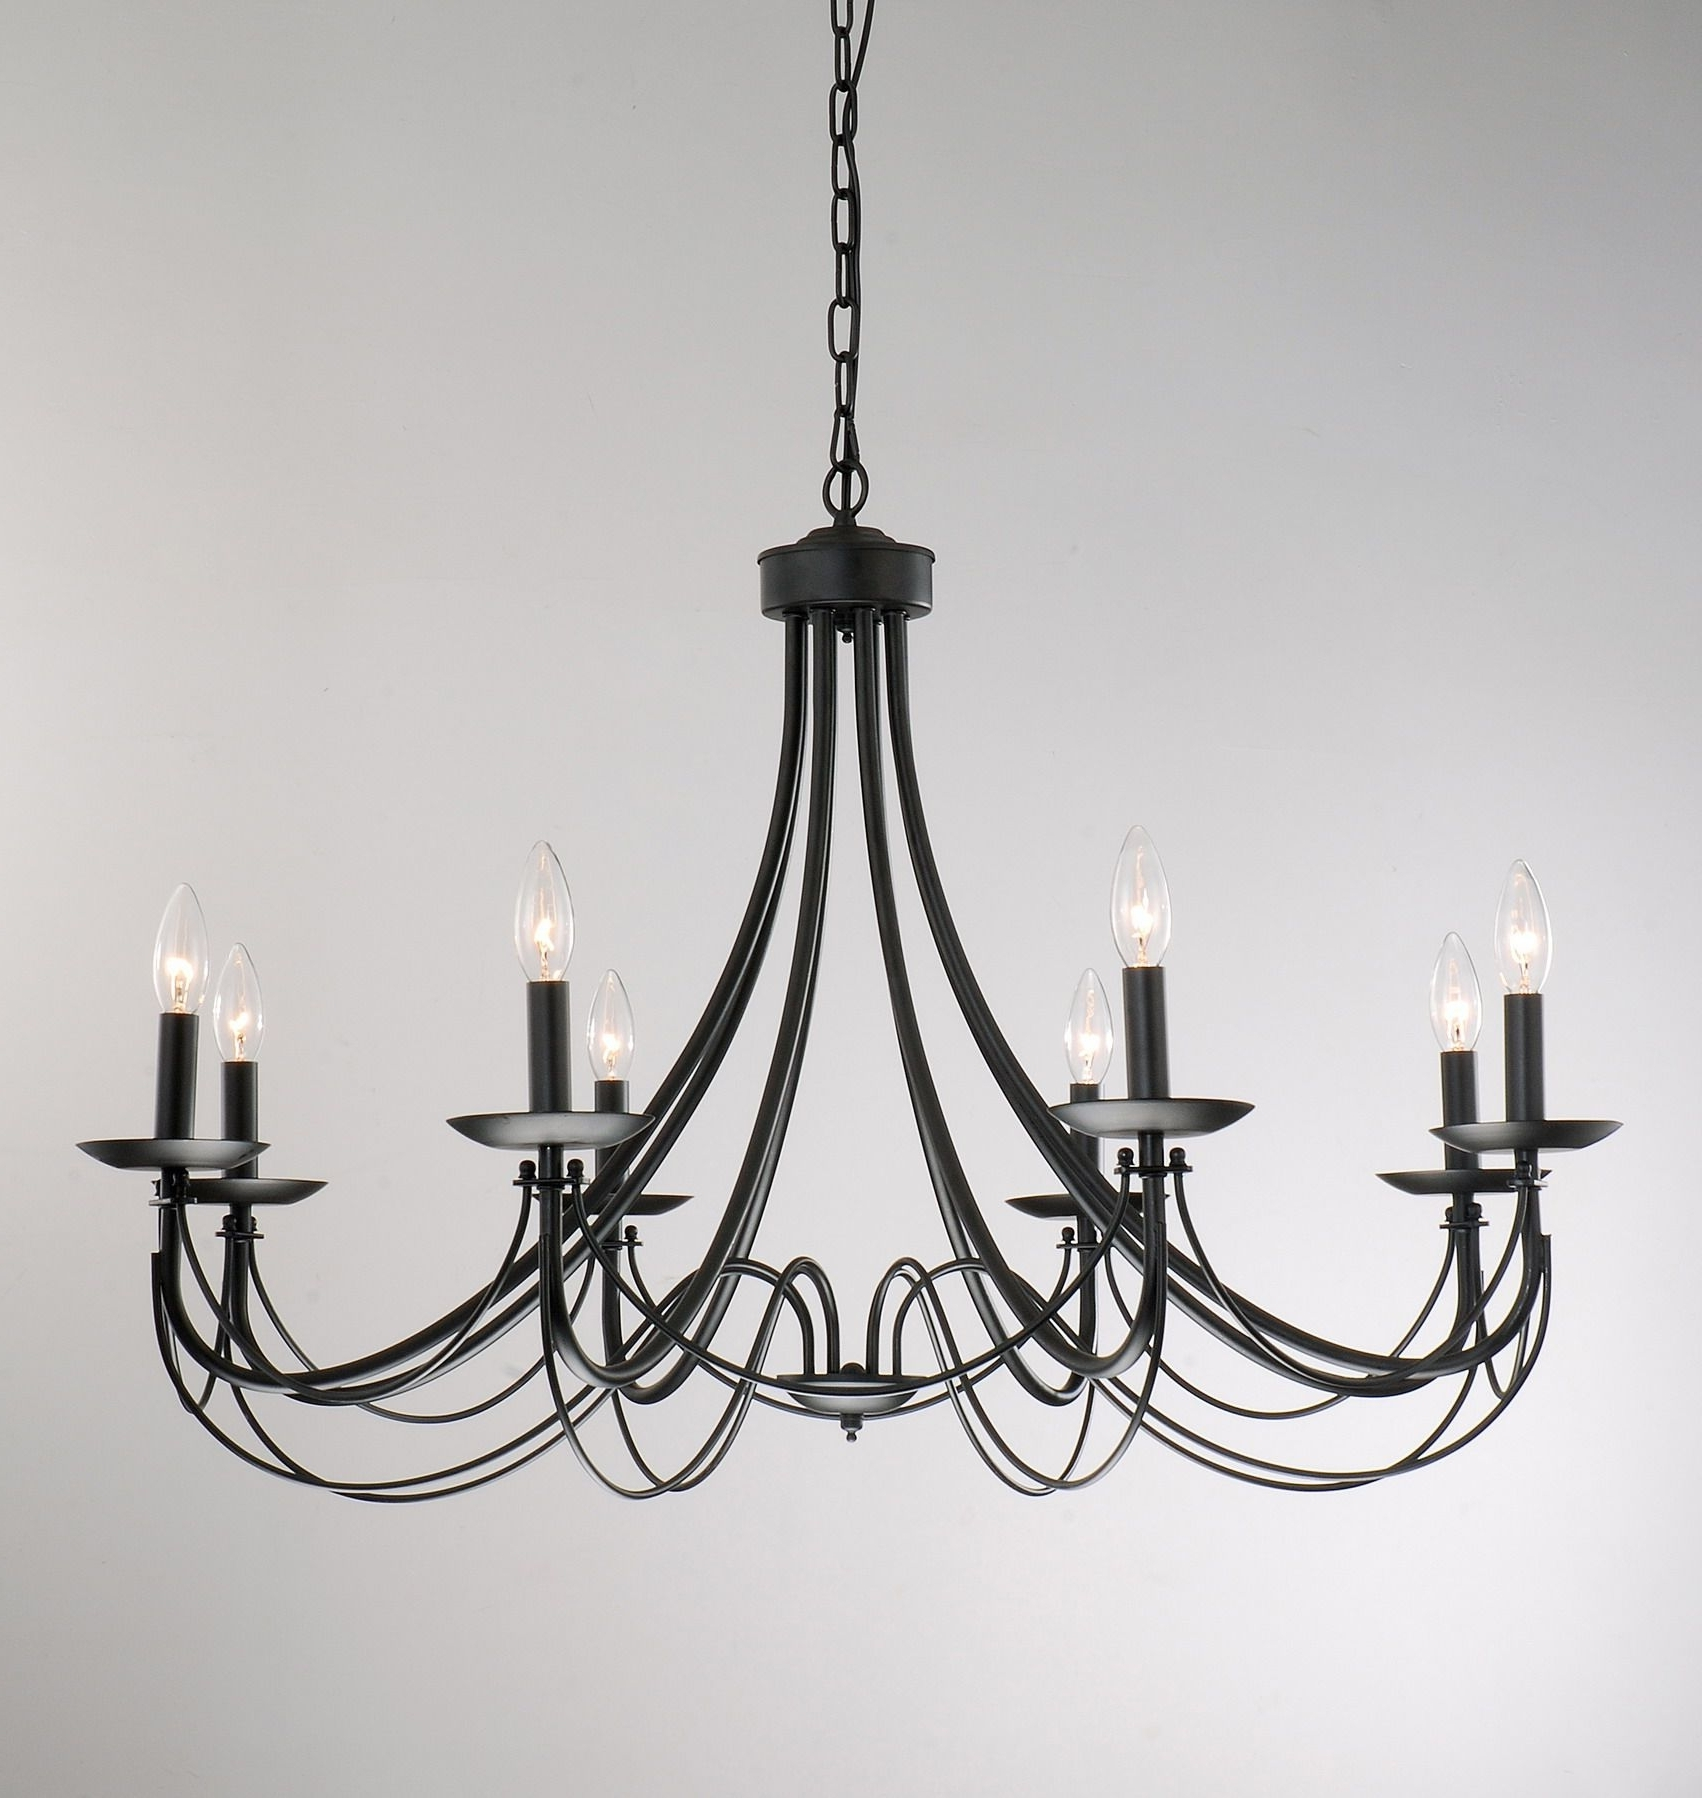 Black Chandelier, Chandeliers And Lights Pertaining To Black Iron Chandeliers (View 11 of 15)